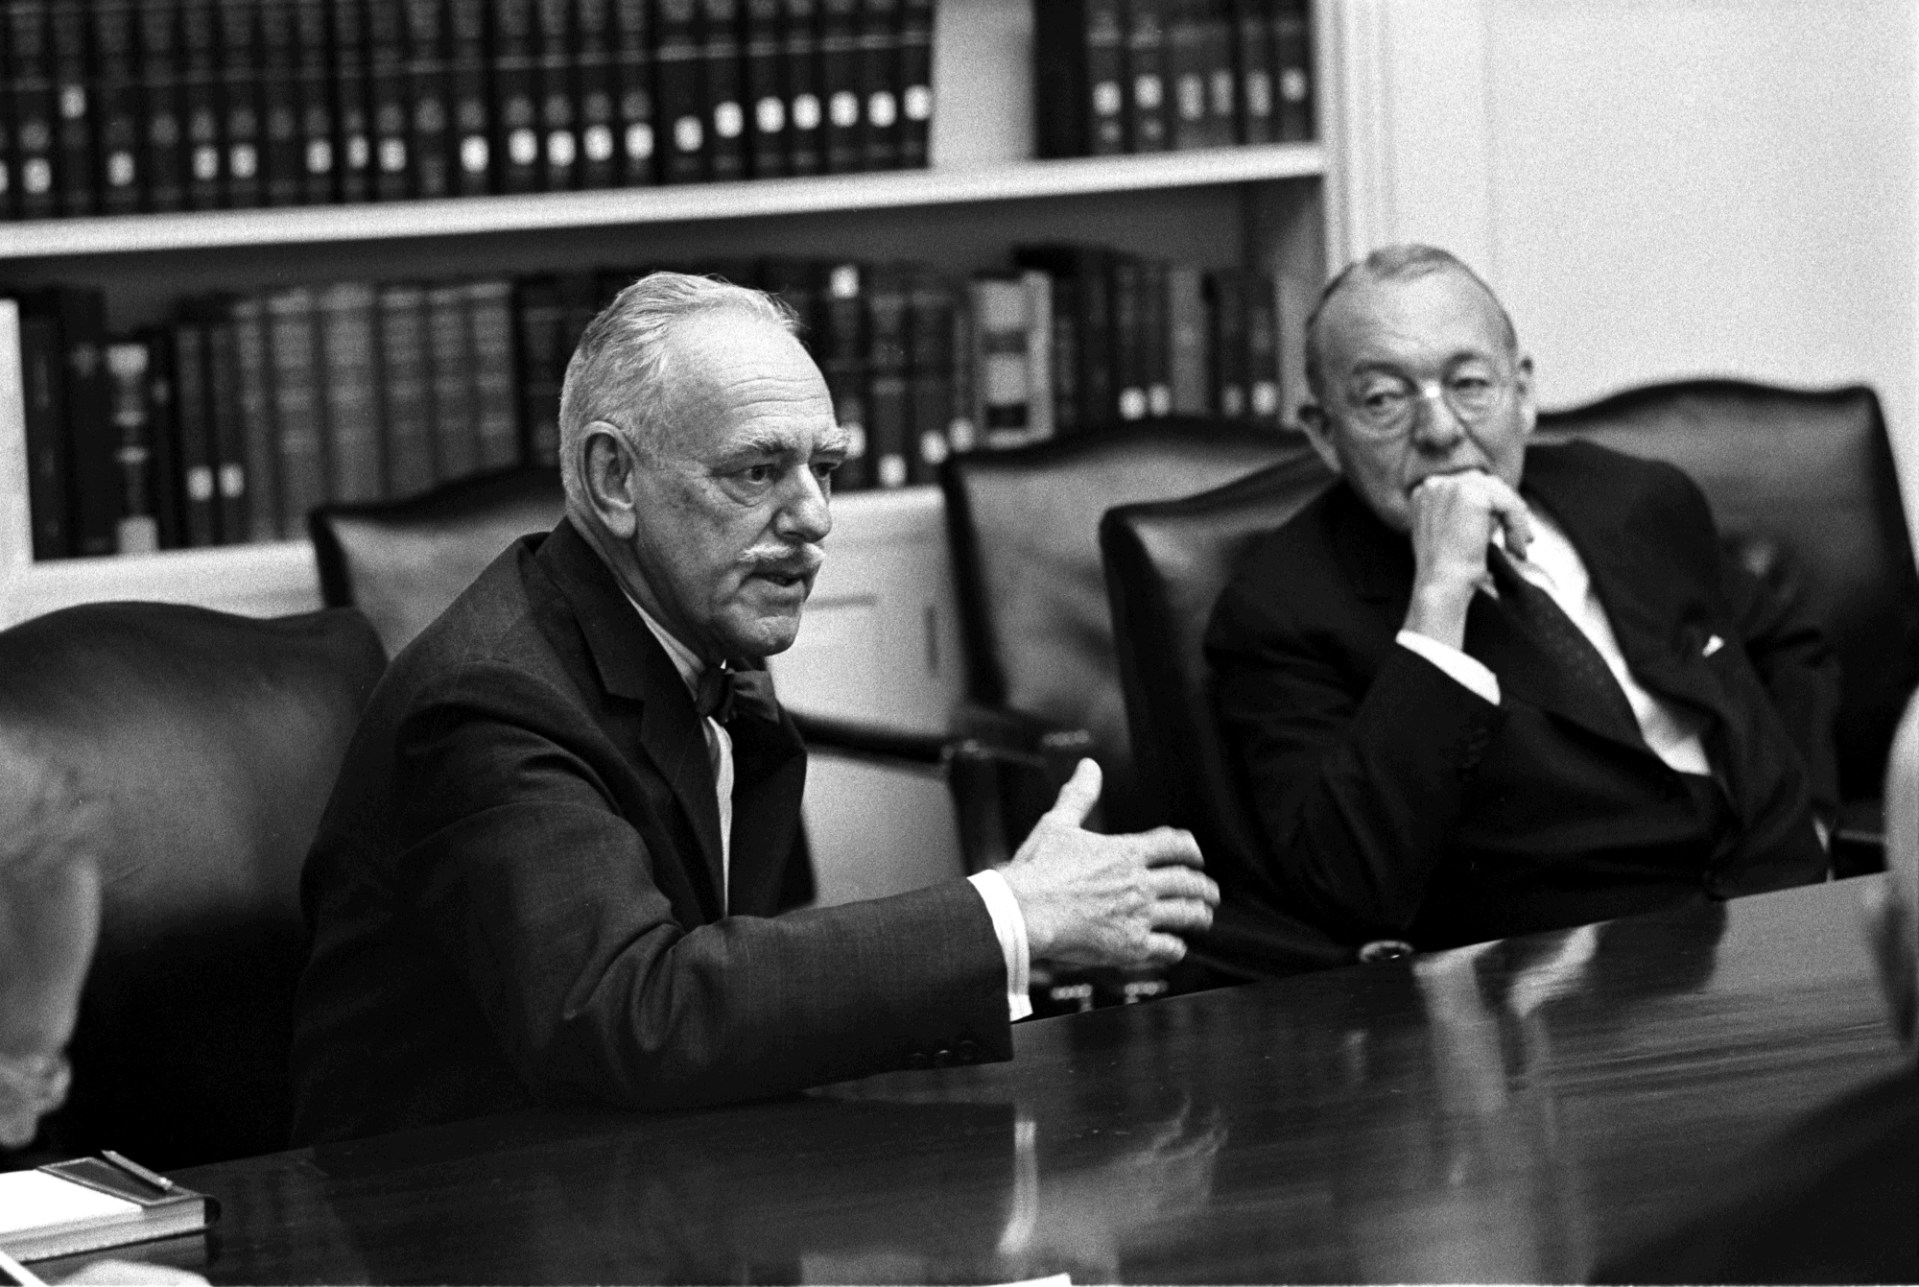 Dean Acheson (L) at Meeting of President's consultants on Foreign Affairs (The Wise Men) | LBJ Presidential Library